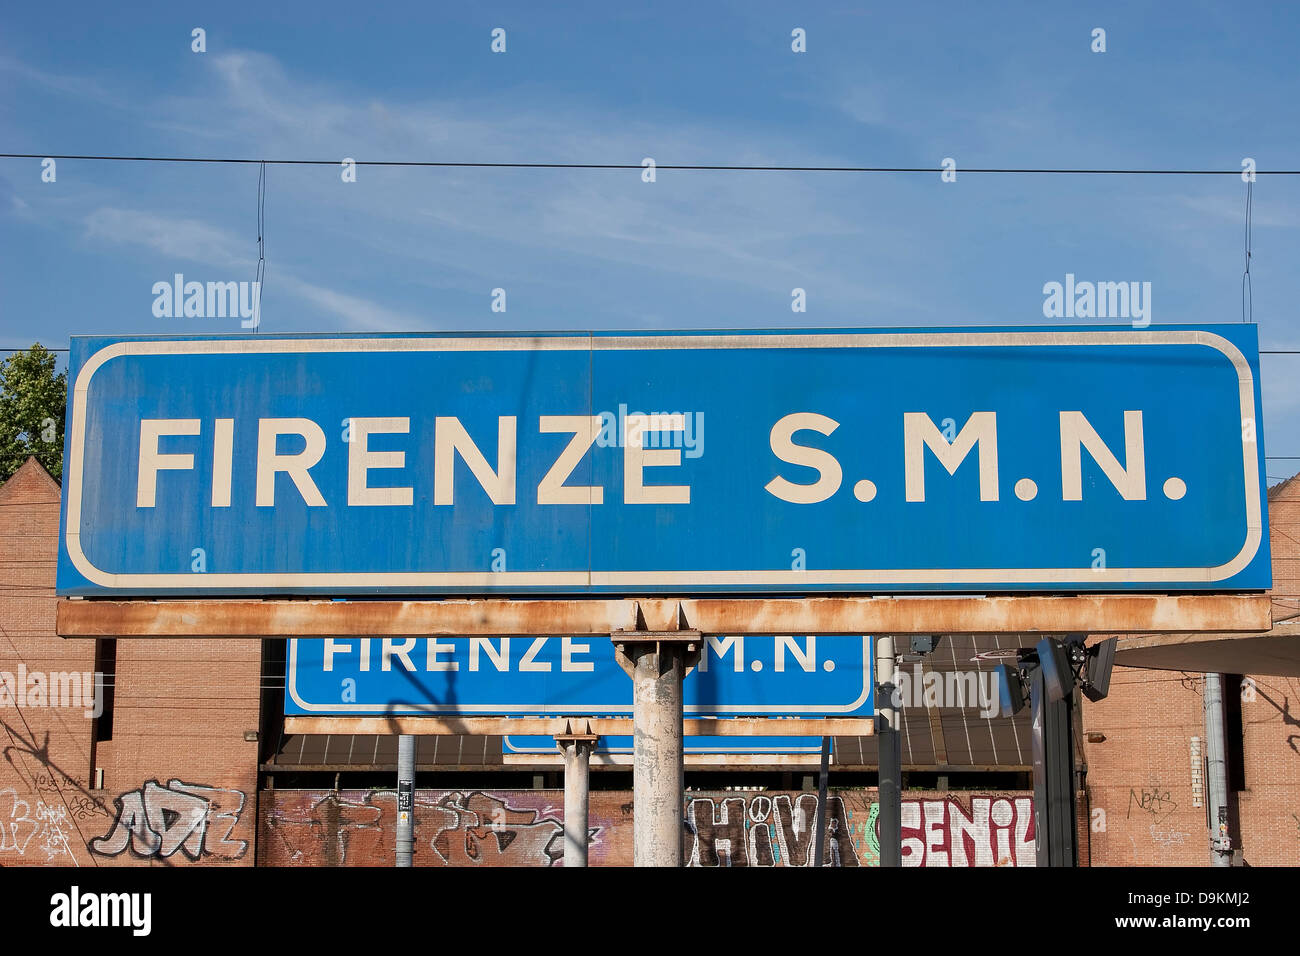 A train station platform sign for Firenze S.M.N. (Florence Santa Maria Novella) - the main railway station in Florence, - Stock Image